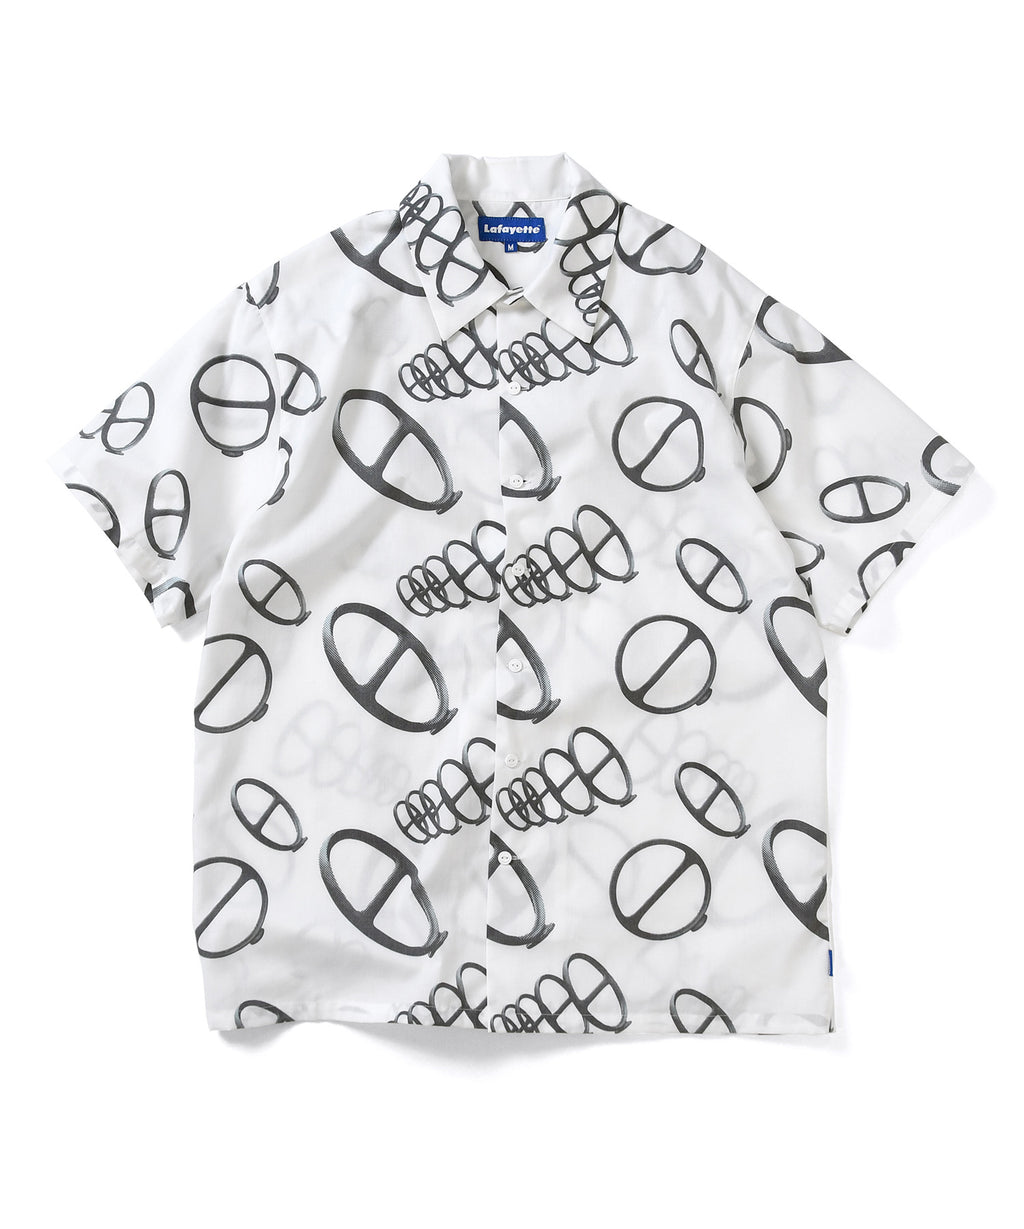 Lafayette CITYRACKS ALLOVER PATTERN S/S SHIRT LS200208 WHITE